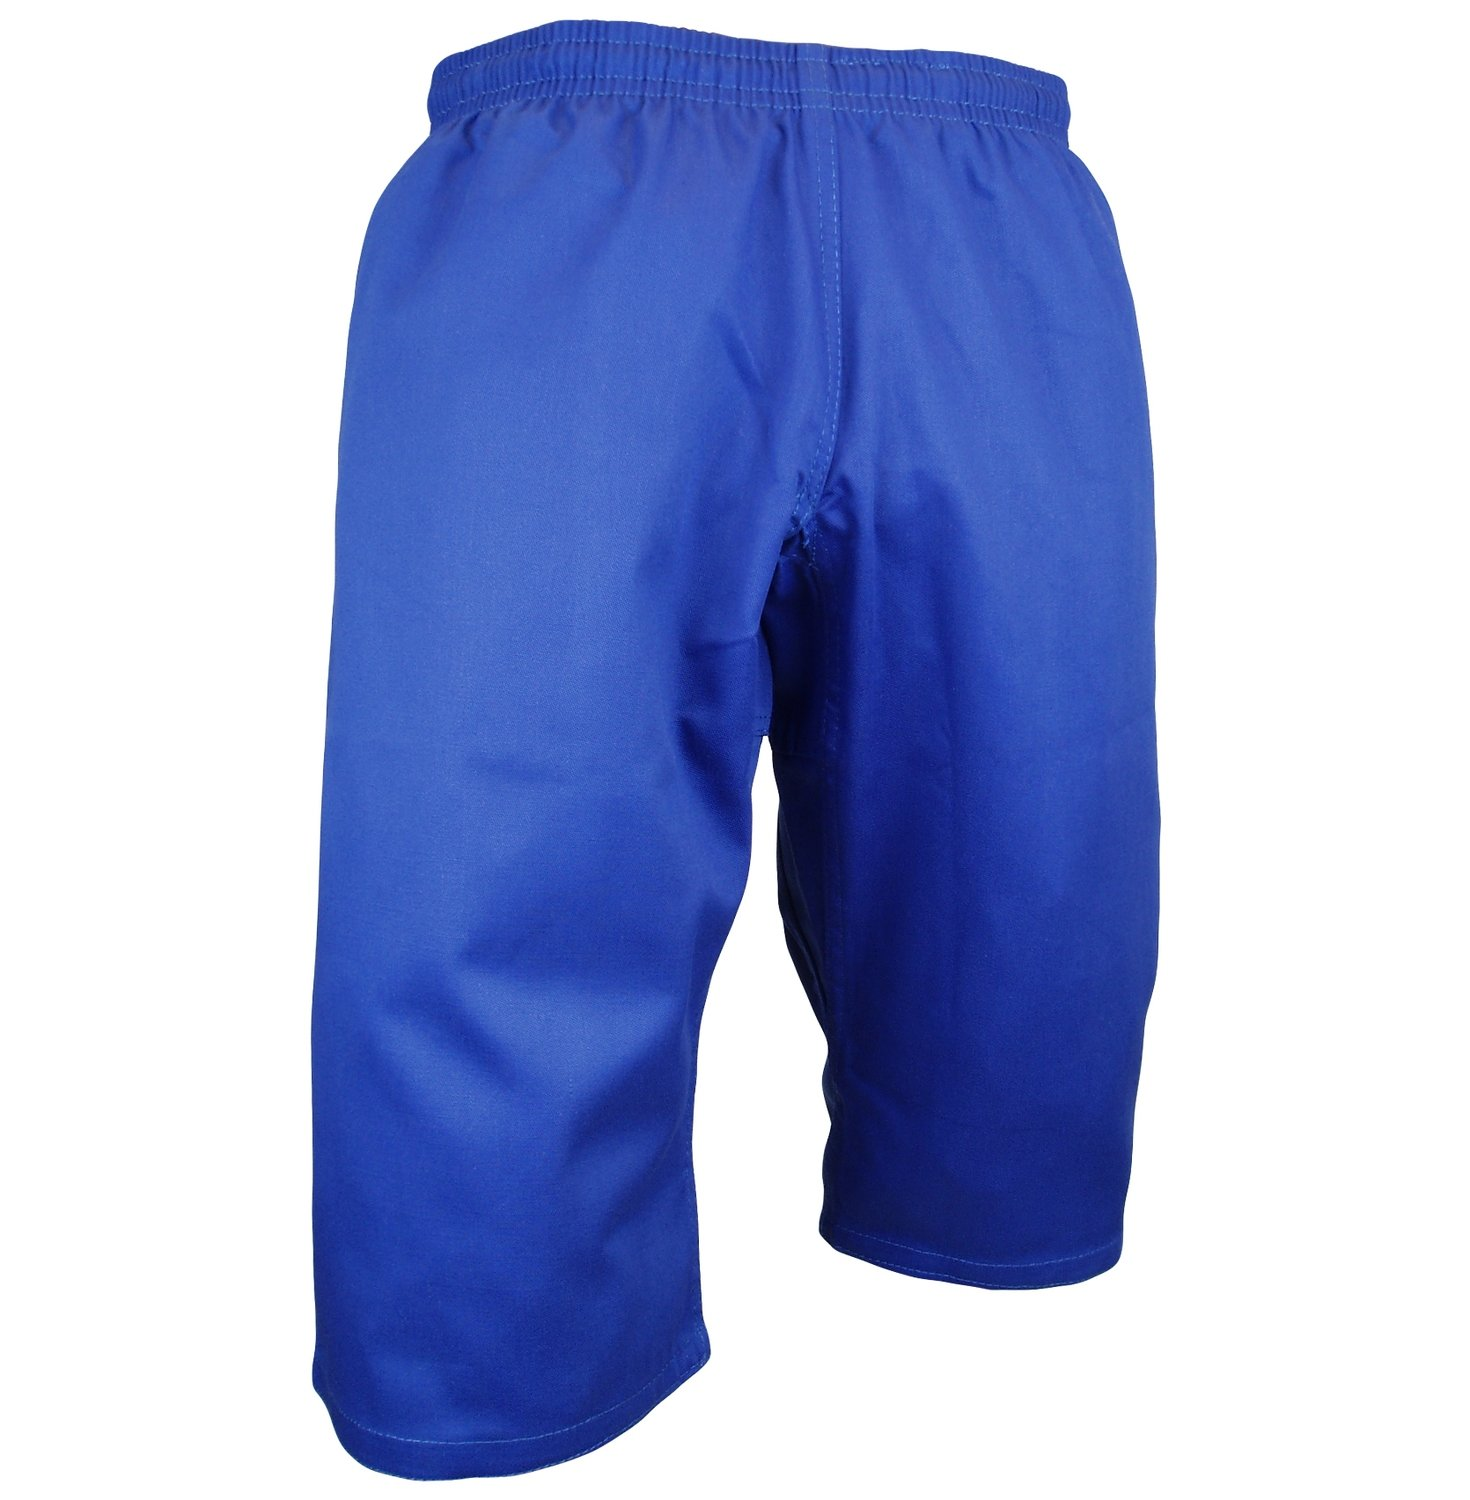 Karate Uniform, Pants, Shortcut, Light W't., Blue